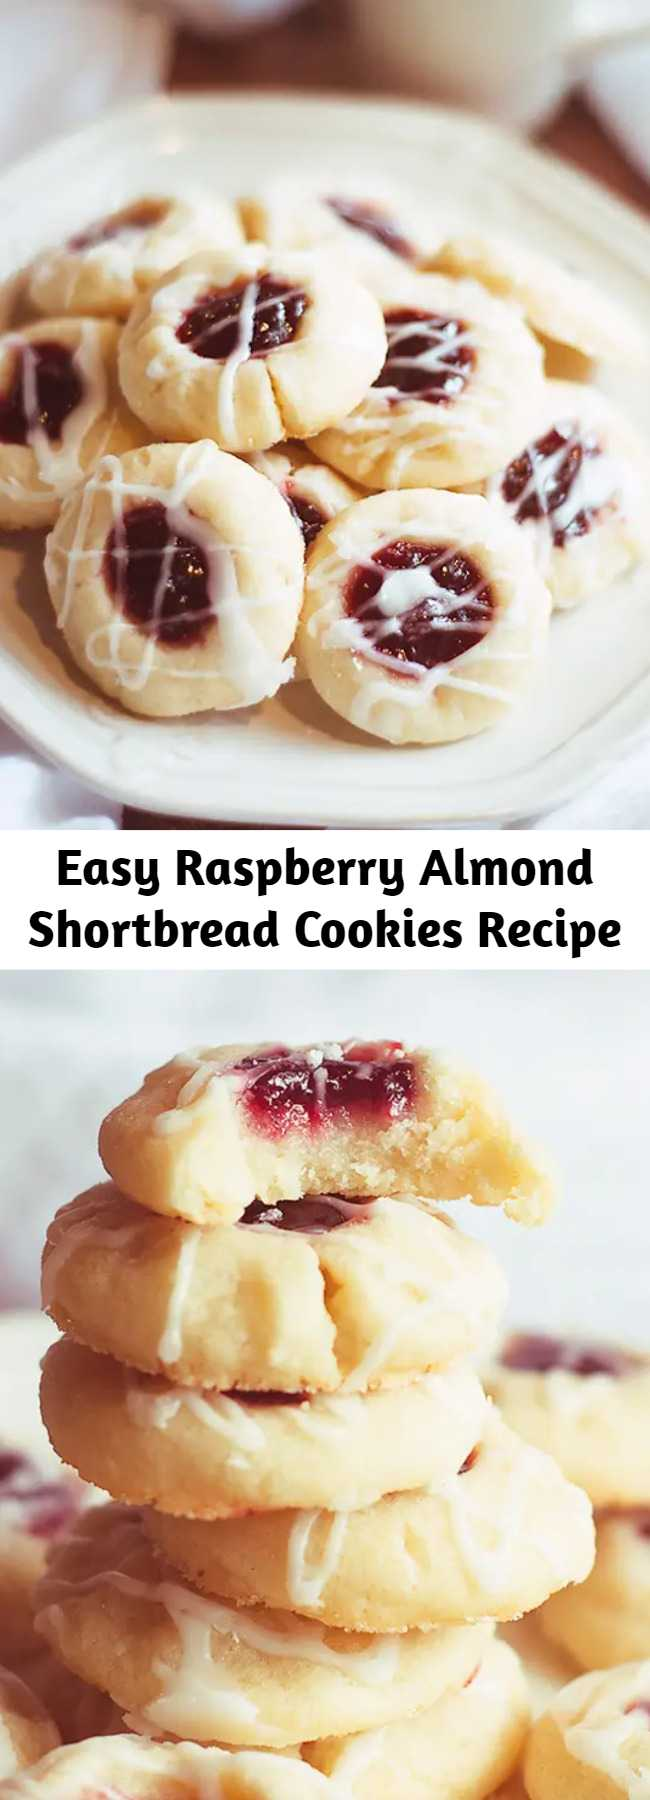 Easy Raspberry Almond Shortbread Cookies Recipe - I've been so excited about posting this raspberry almond shortbread cookies recipe because it's hands-down my favorite recipe of all time. It's so very simple, but so amazingly good. These are just my kind of cookies, and they hold the spot as my favorite cookies to make during the holidays.